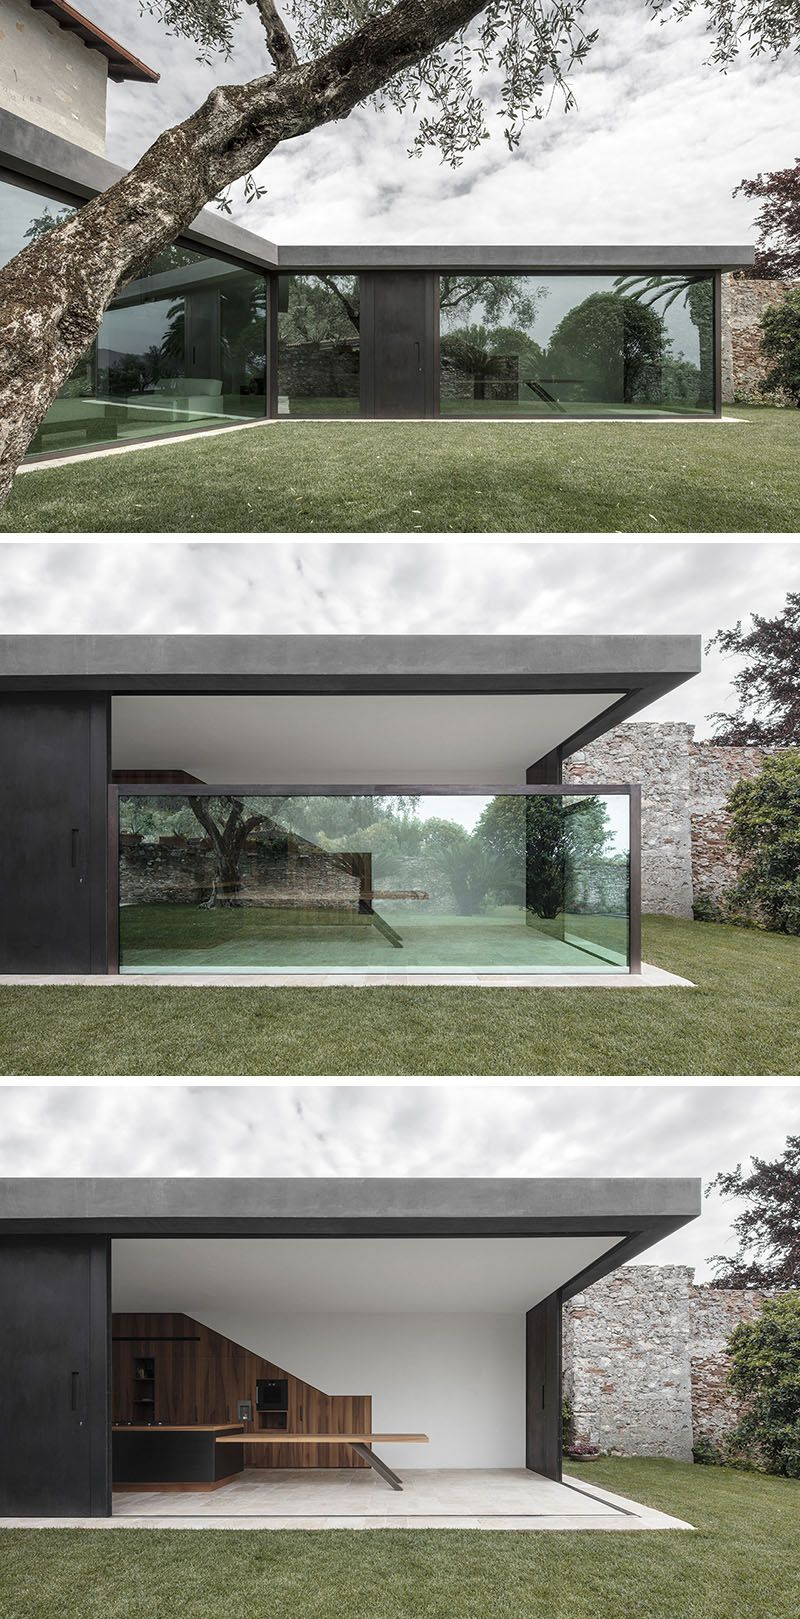 This Italian Villa Has Glass Walls That Disappear Into the Floor ...